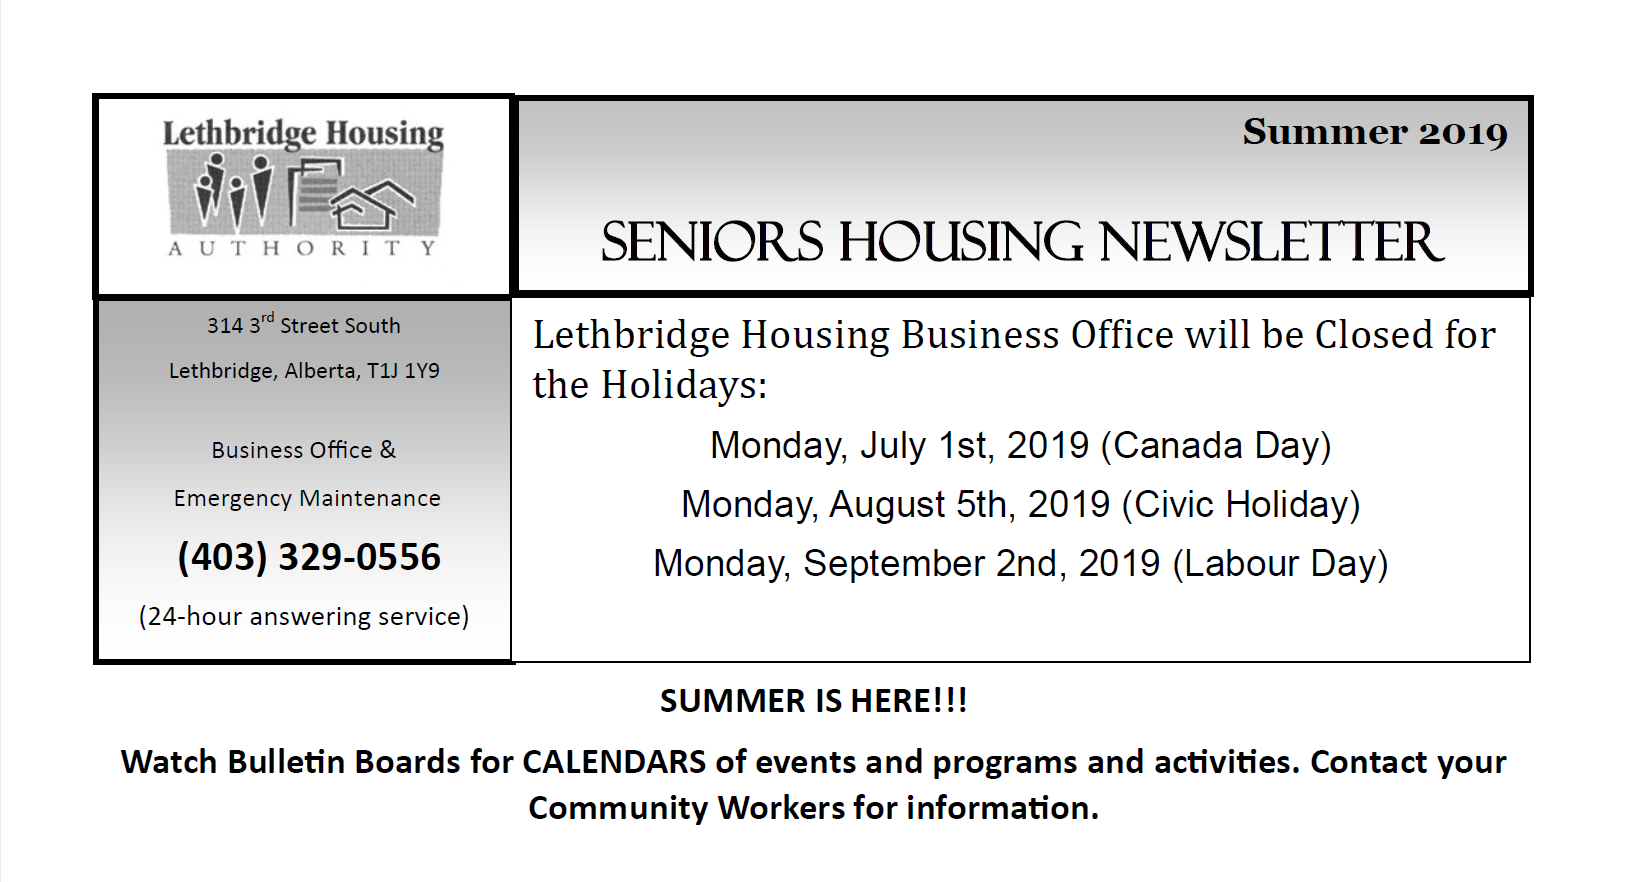 Seniors Self-Contained Summer 2019 Newsletter